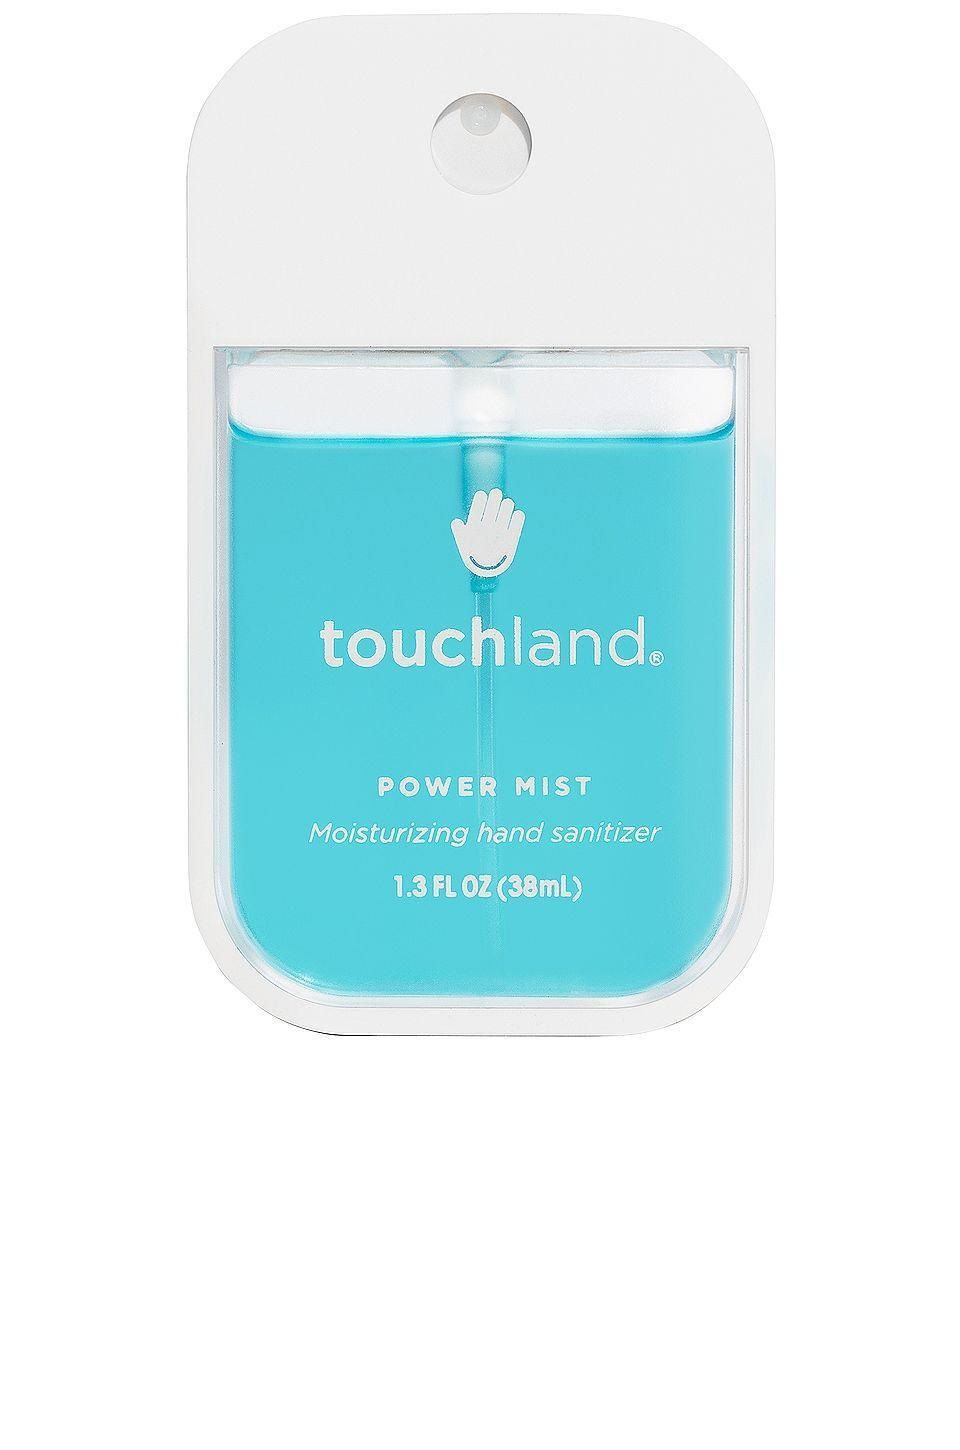 """<p><strong>Touchland</strong></p><p>revolve.com</p><p><strong>$11.00</strong></p><p><a href=""""https://go.redirectingat.com?id=74968X1596630&url=https%3A%2F%2Fwww.revolve.com%2Fdp%2FTLAN-WU8%2F&sref=https%3A%2F%2Fwww.cosmopolitan.com%2Fstyle-beauty%2Ffashion%2Fg37146715%2Fgoing-away-gifts%2F"""" rel=""""nofollow noopener"""" target=""""_blank"""" data-ylk=""""slk:Shop Now"""" class=""""link rapid-noclick-resp"""">Shop Now</a></p><p>Wherever they're headed, they could use some hand sanitizer. And this little travel-sized one is fancy enough to give as a gift.</p>"""